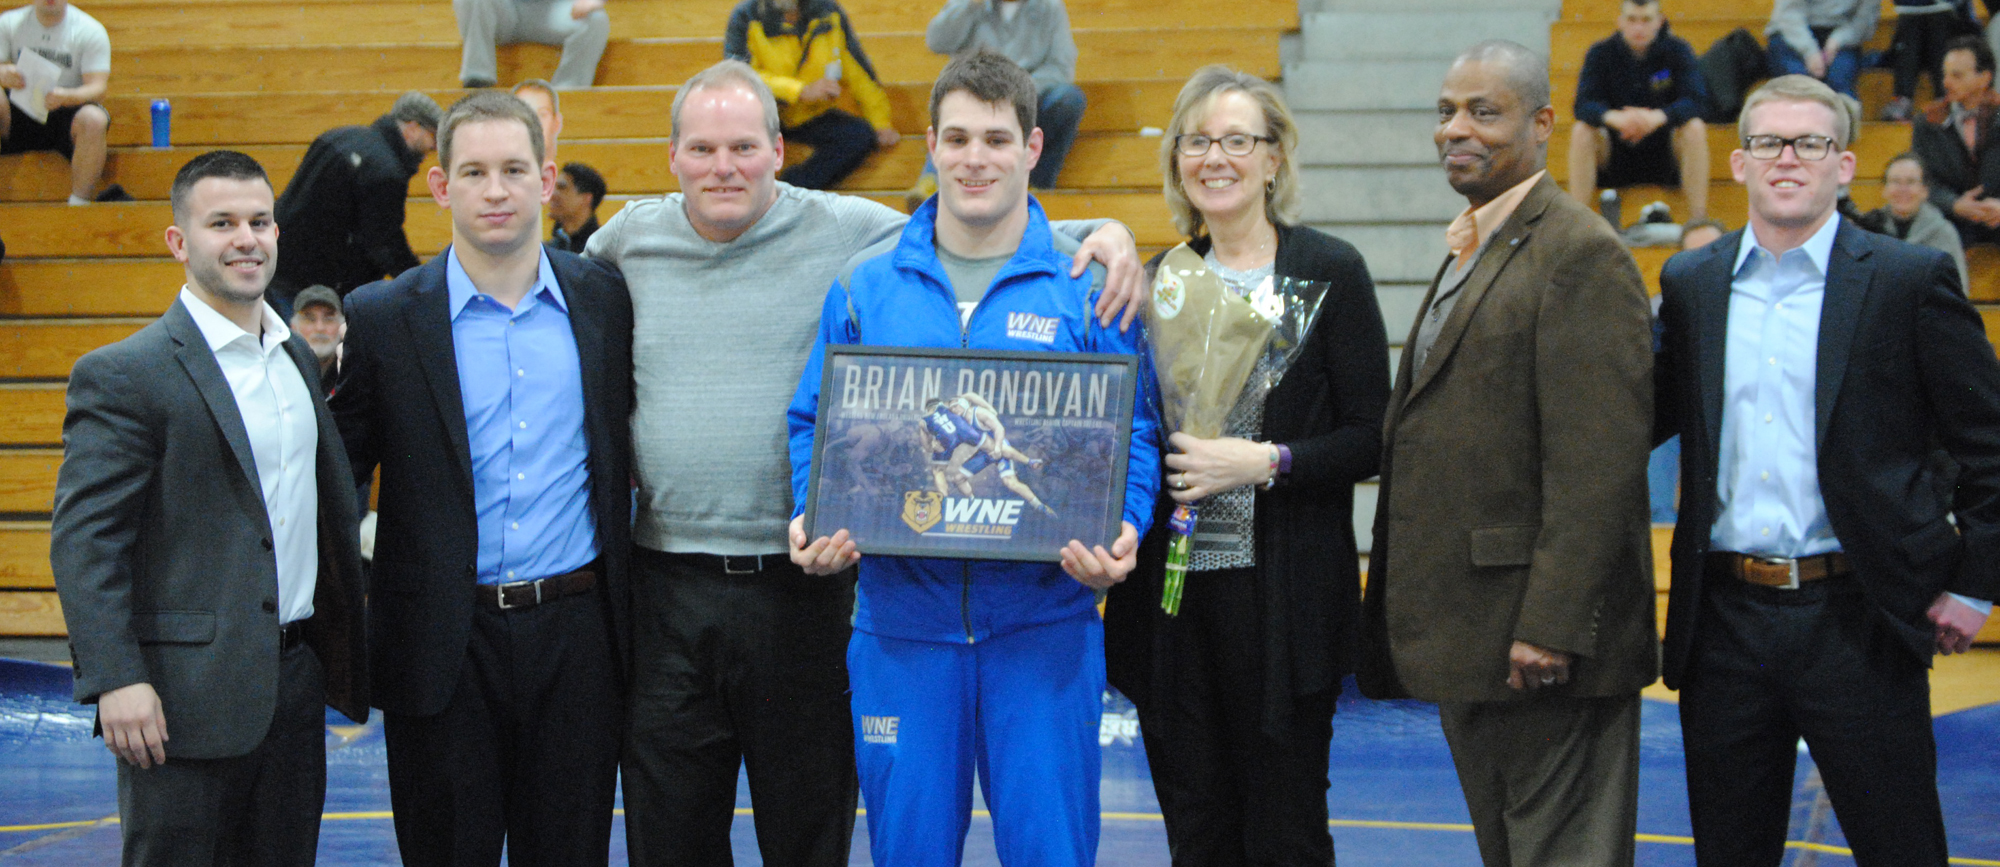 Donovan Shines on Senior Night as Golden Bears Top Plymouth State, 31-15